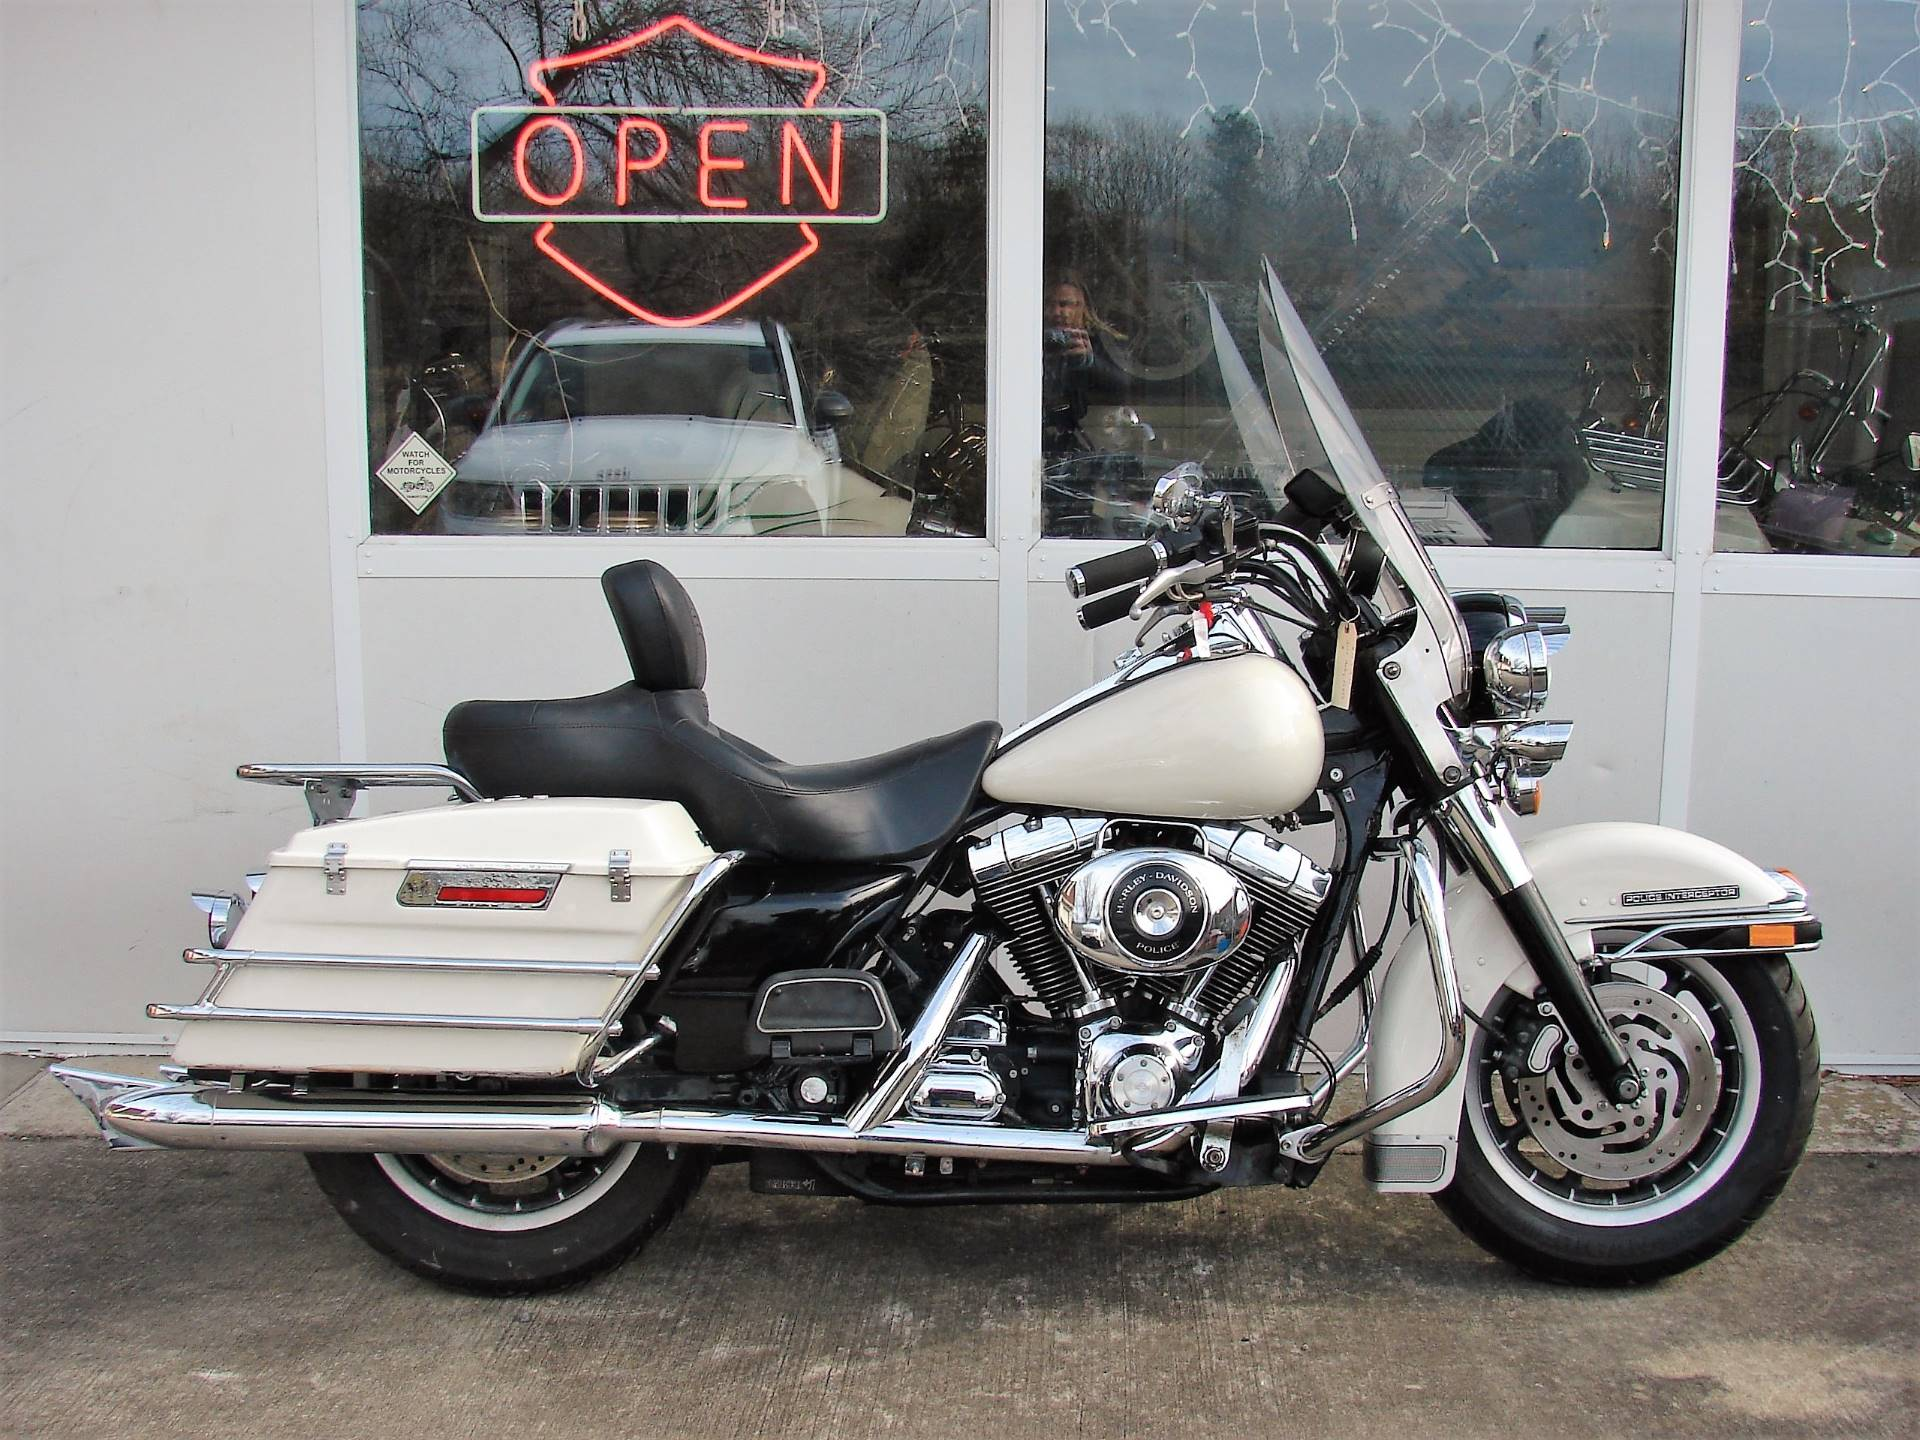 2001 Harley-Davidson FLHTPI Electra Glide (Police Special) - WHITE in Williamstown, New Jersey - Photo 1